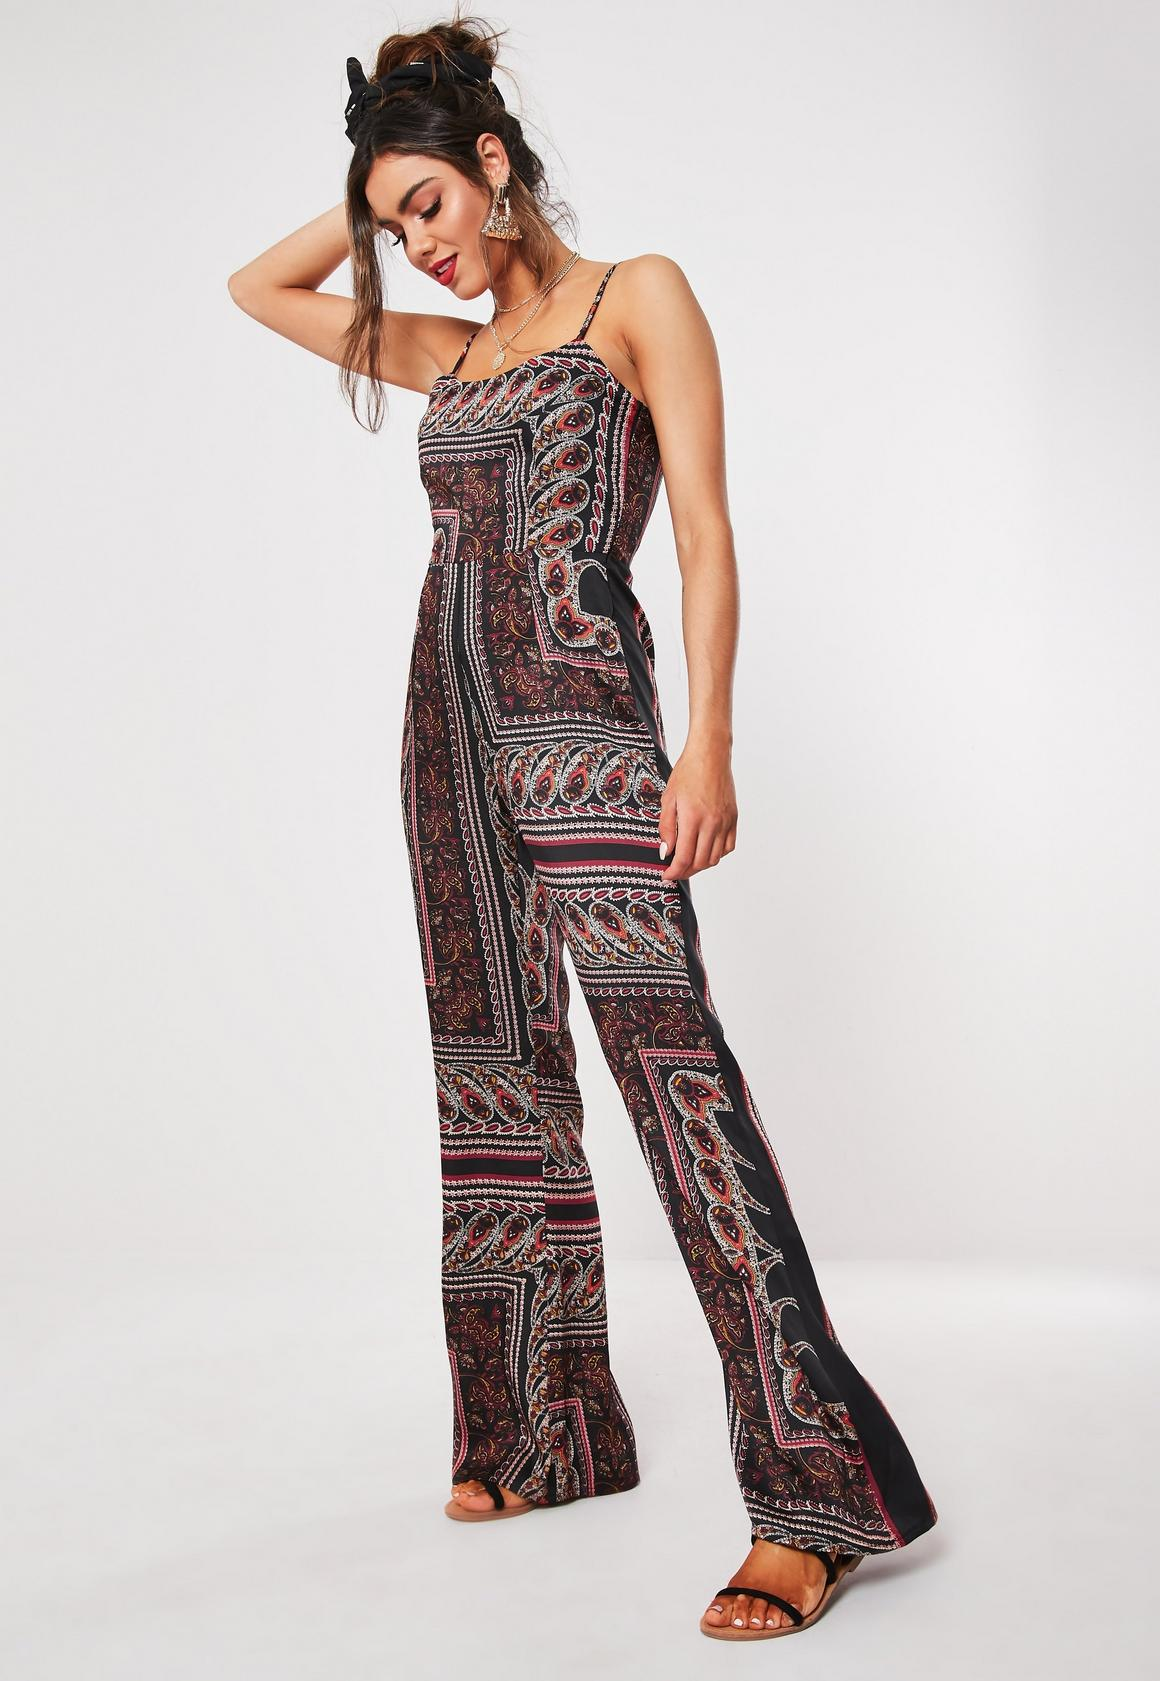 7b8427f4226 Petite Black Paisley Print Strappy Jumpsuit. Hover to Zoom